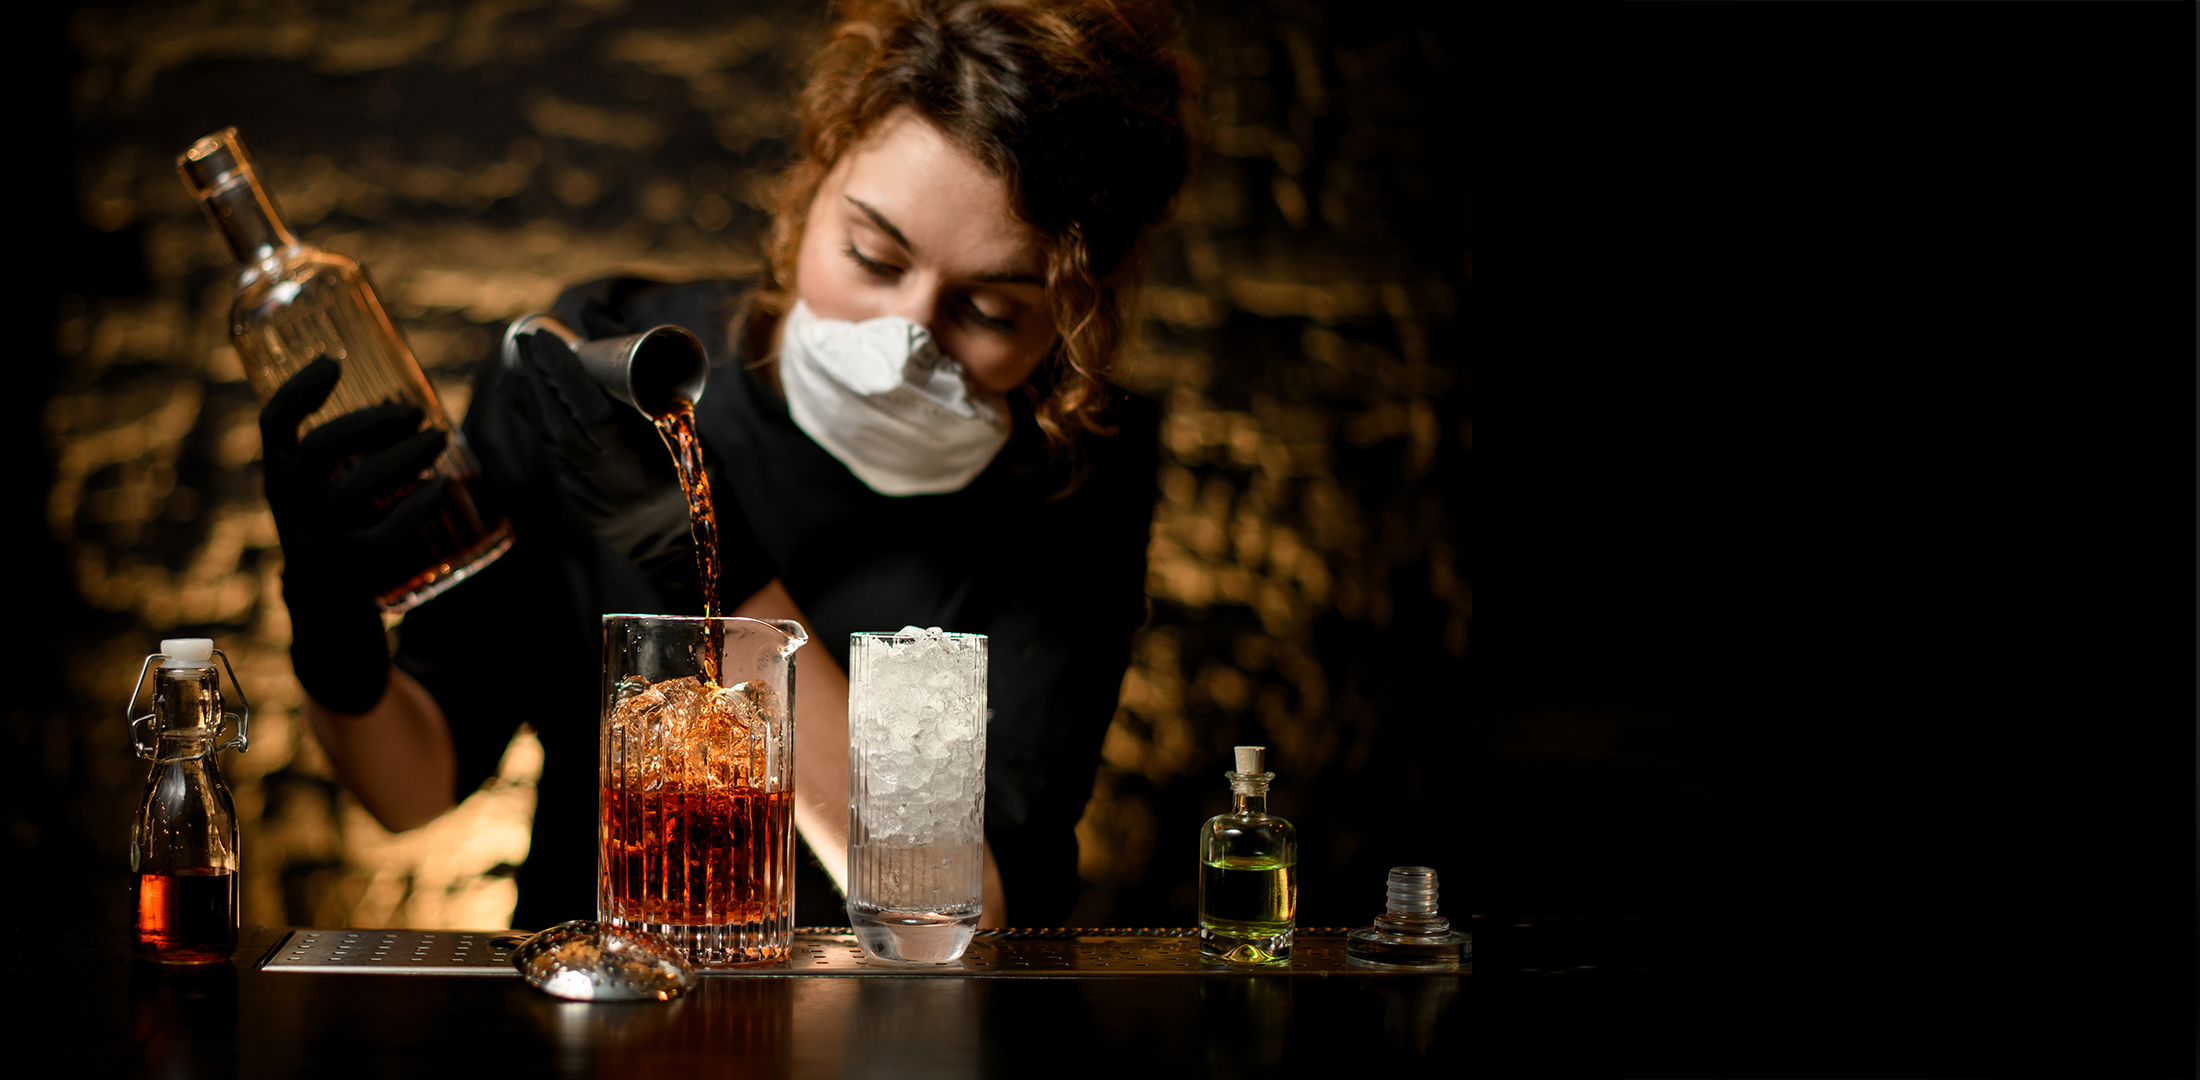 Woman bartender in black clothes pours cocktail | Featured image for HLTSS ICHS64 FOR HOSPITALITY.